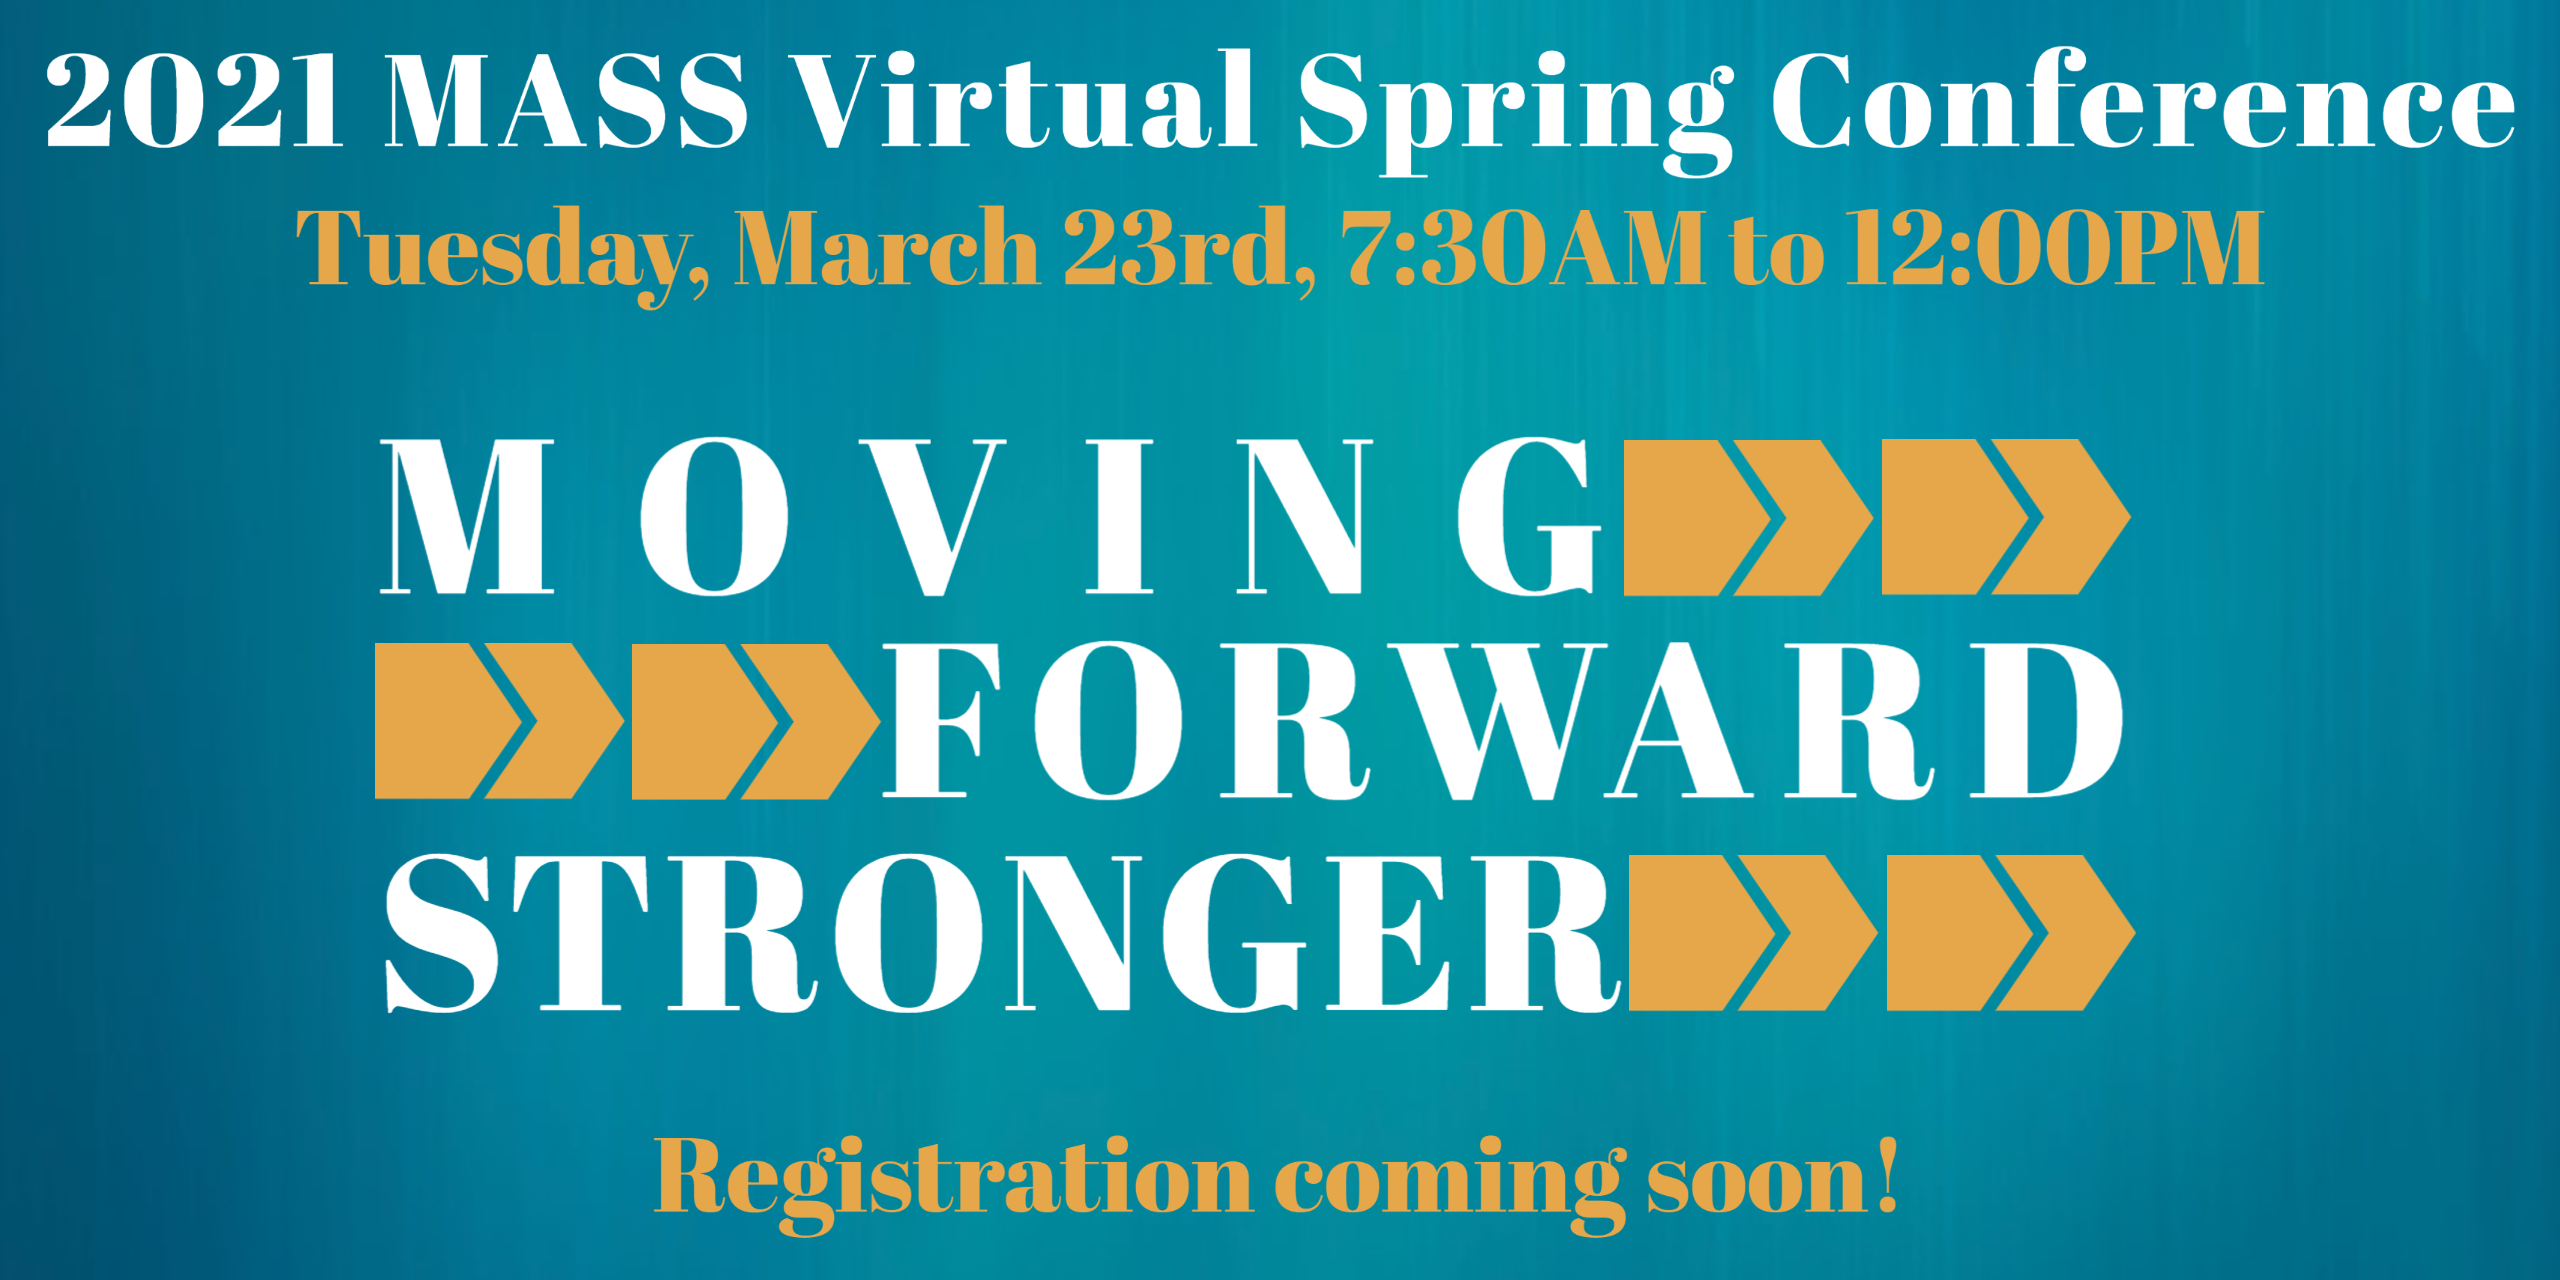 2021 MASS Virtual Spring Conference Save the Date.png - 1.06 Mb